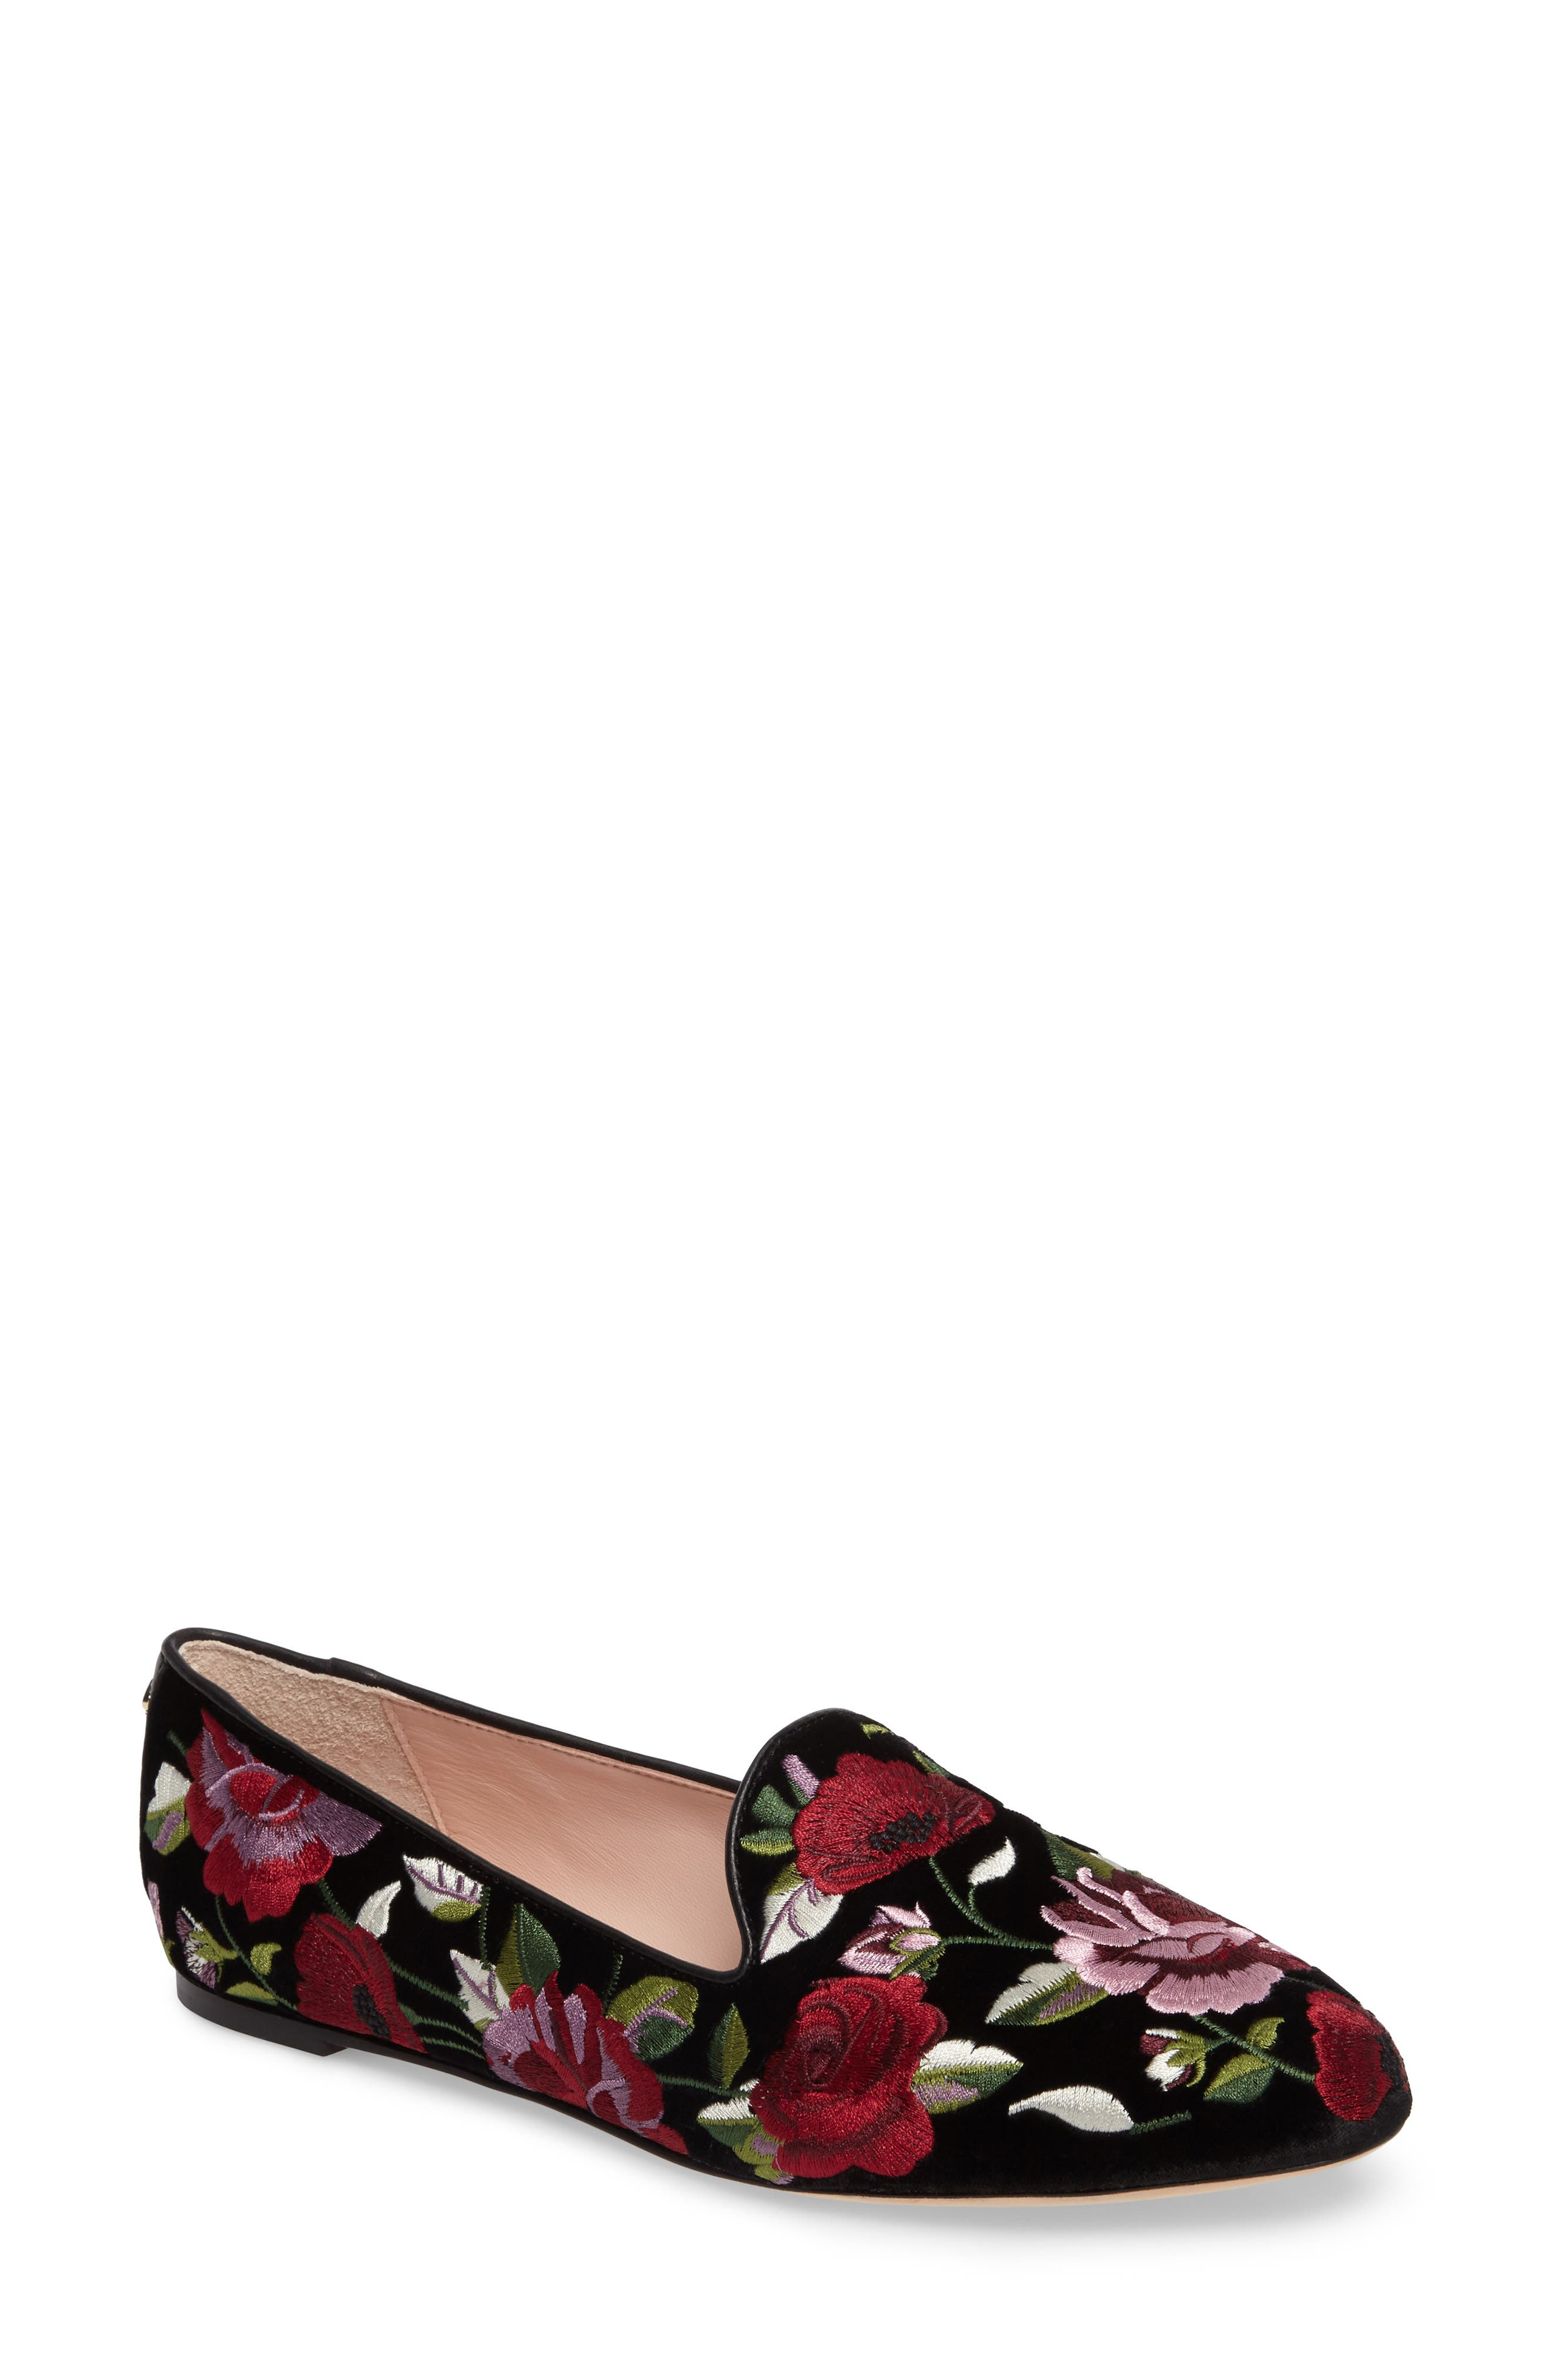 kate spade new york swinton embroidered loafer (Women)